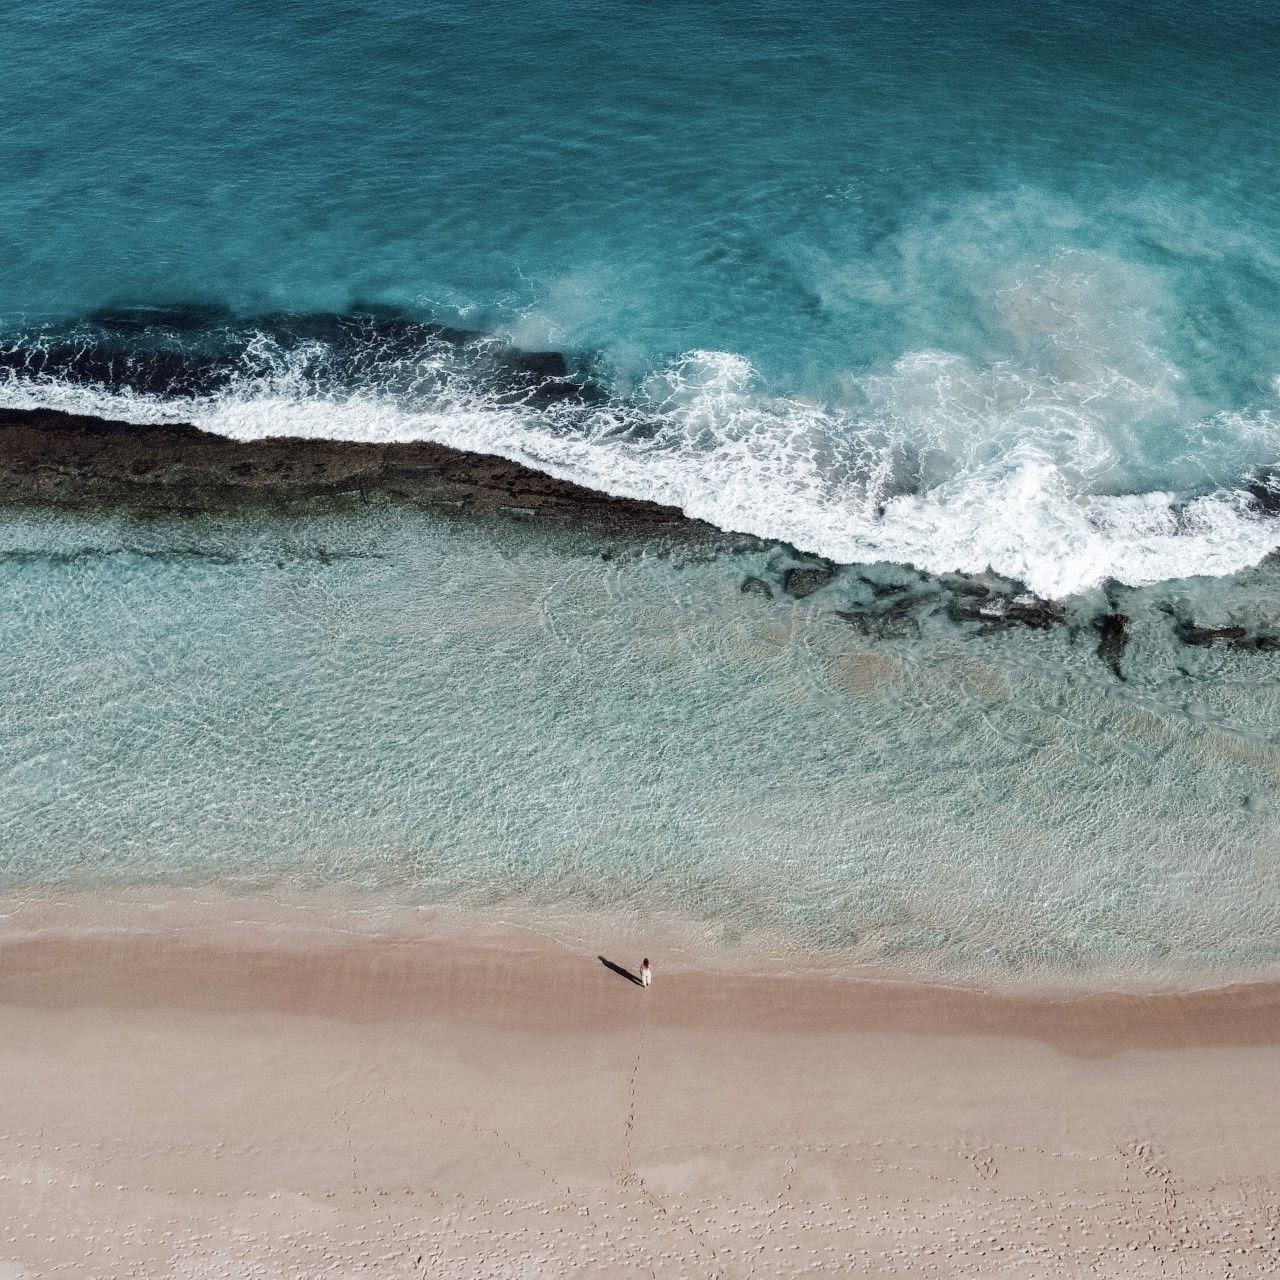 Ariel view of the beach and sea